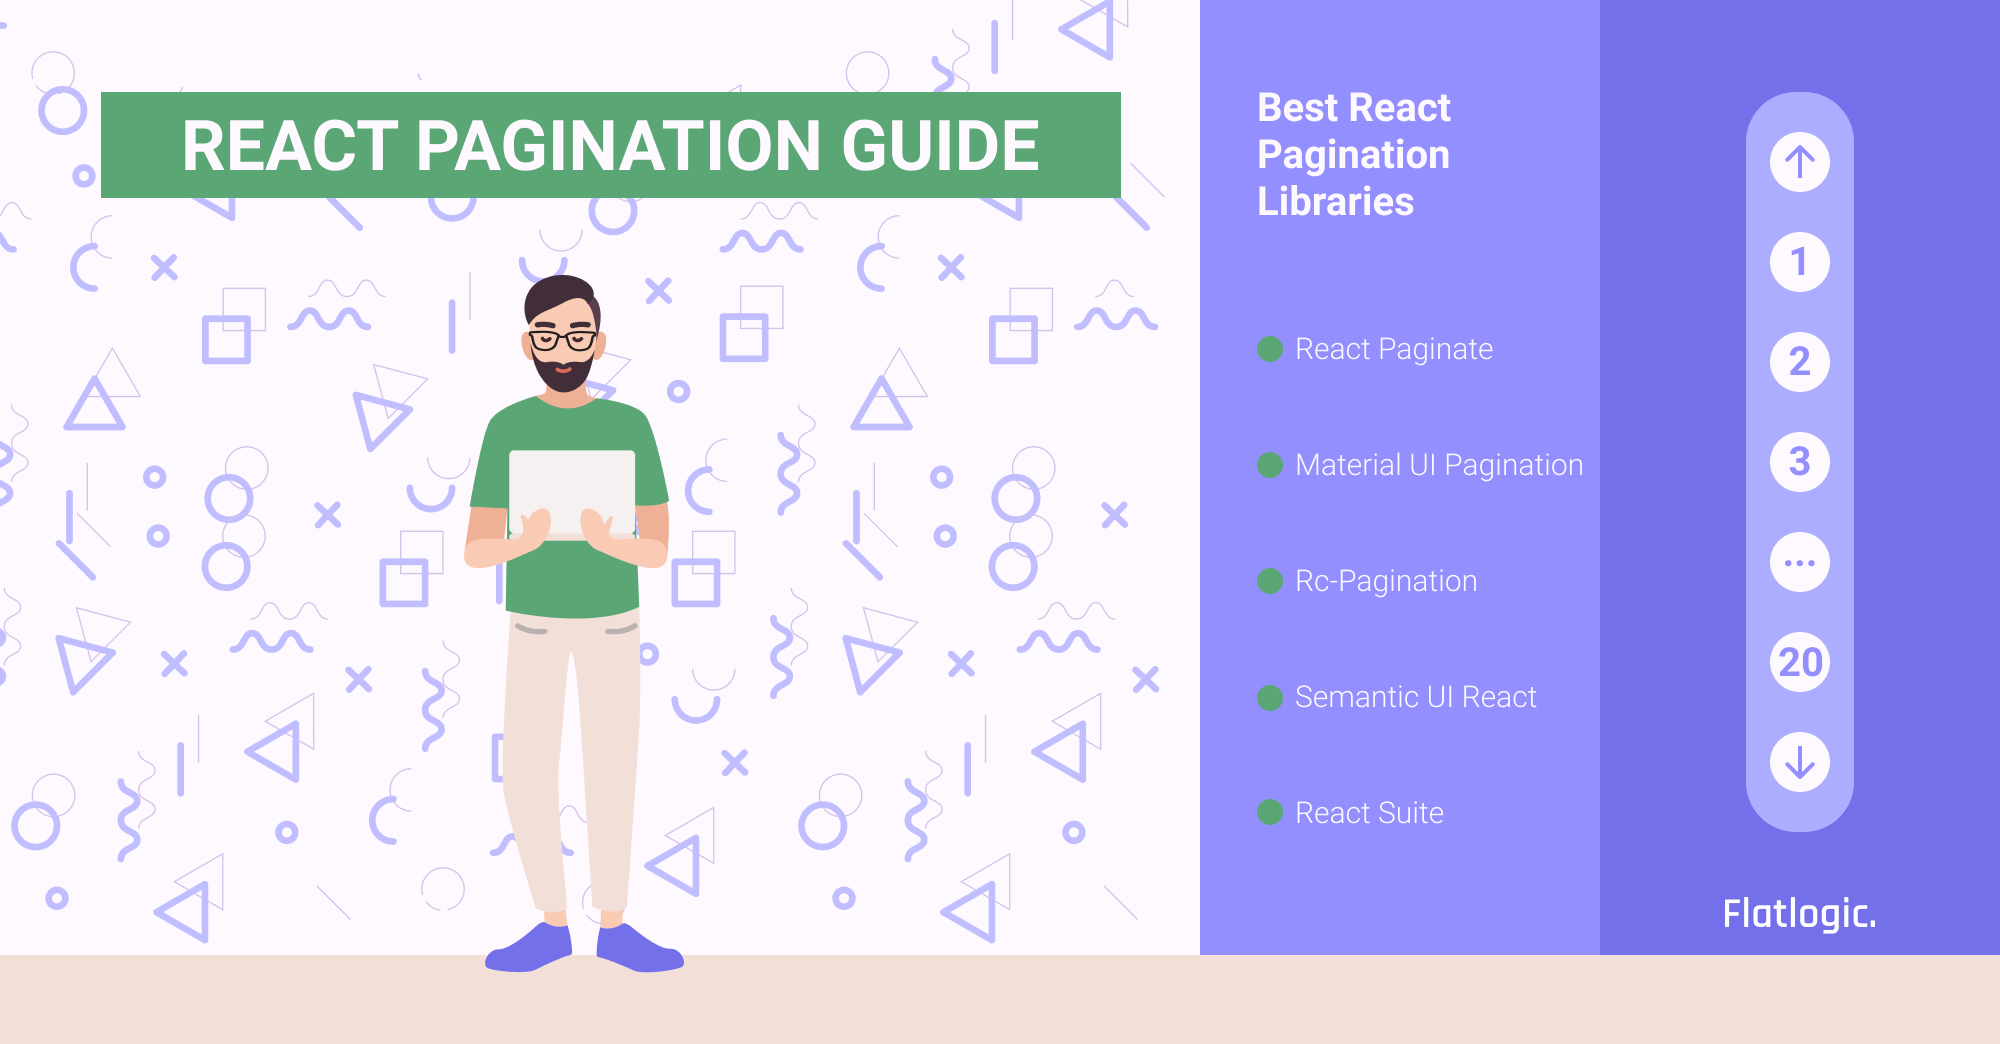 React Pagination Guide And Best React Pagination Libraries - Flatlogic Blog